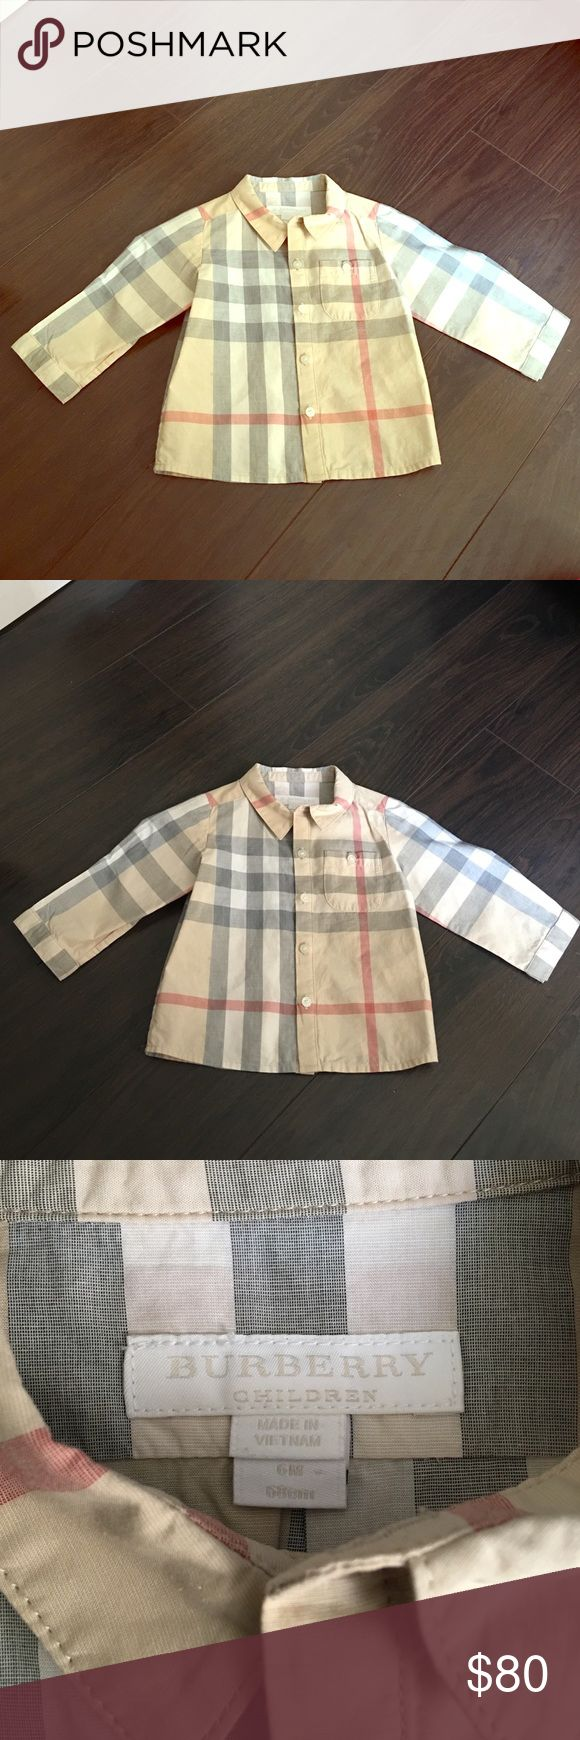 Baby Boys Authentic Burberry Dress Shirt Baby boys Authentic Burberry original Checkered print button down dress shirt ...like brand new only wore once for a couple hours and dry cleaned ..size 6 months Burberry Shirts & Tops Button Down Shirts